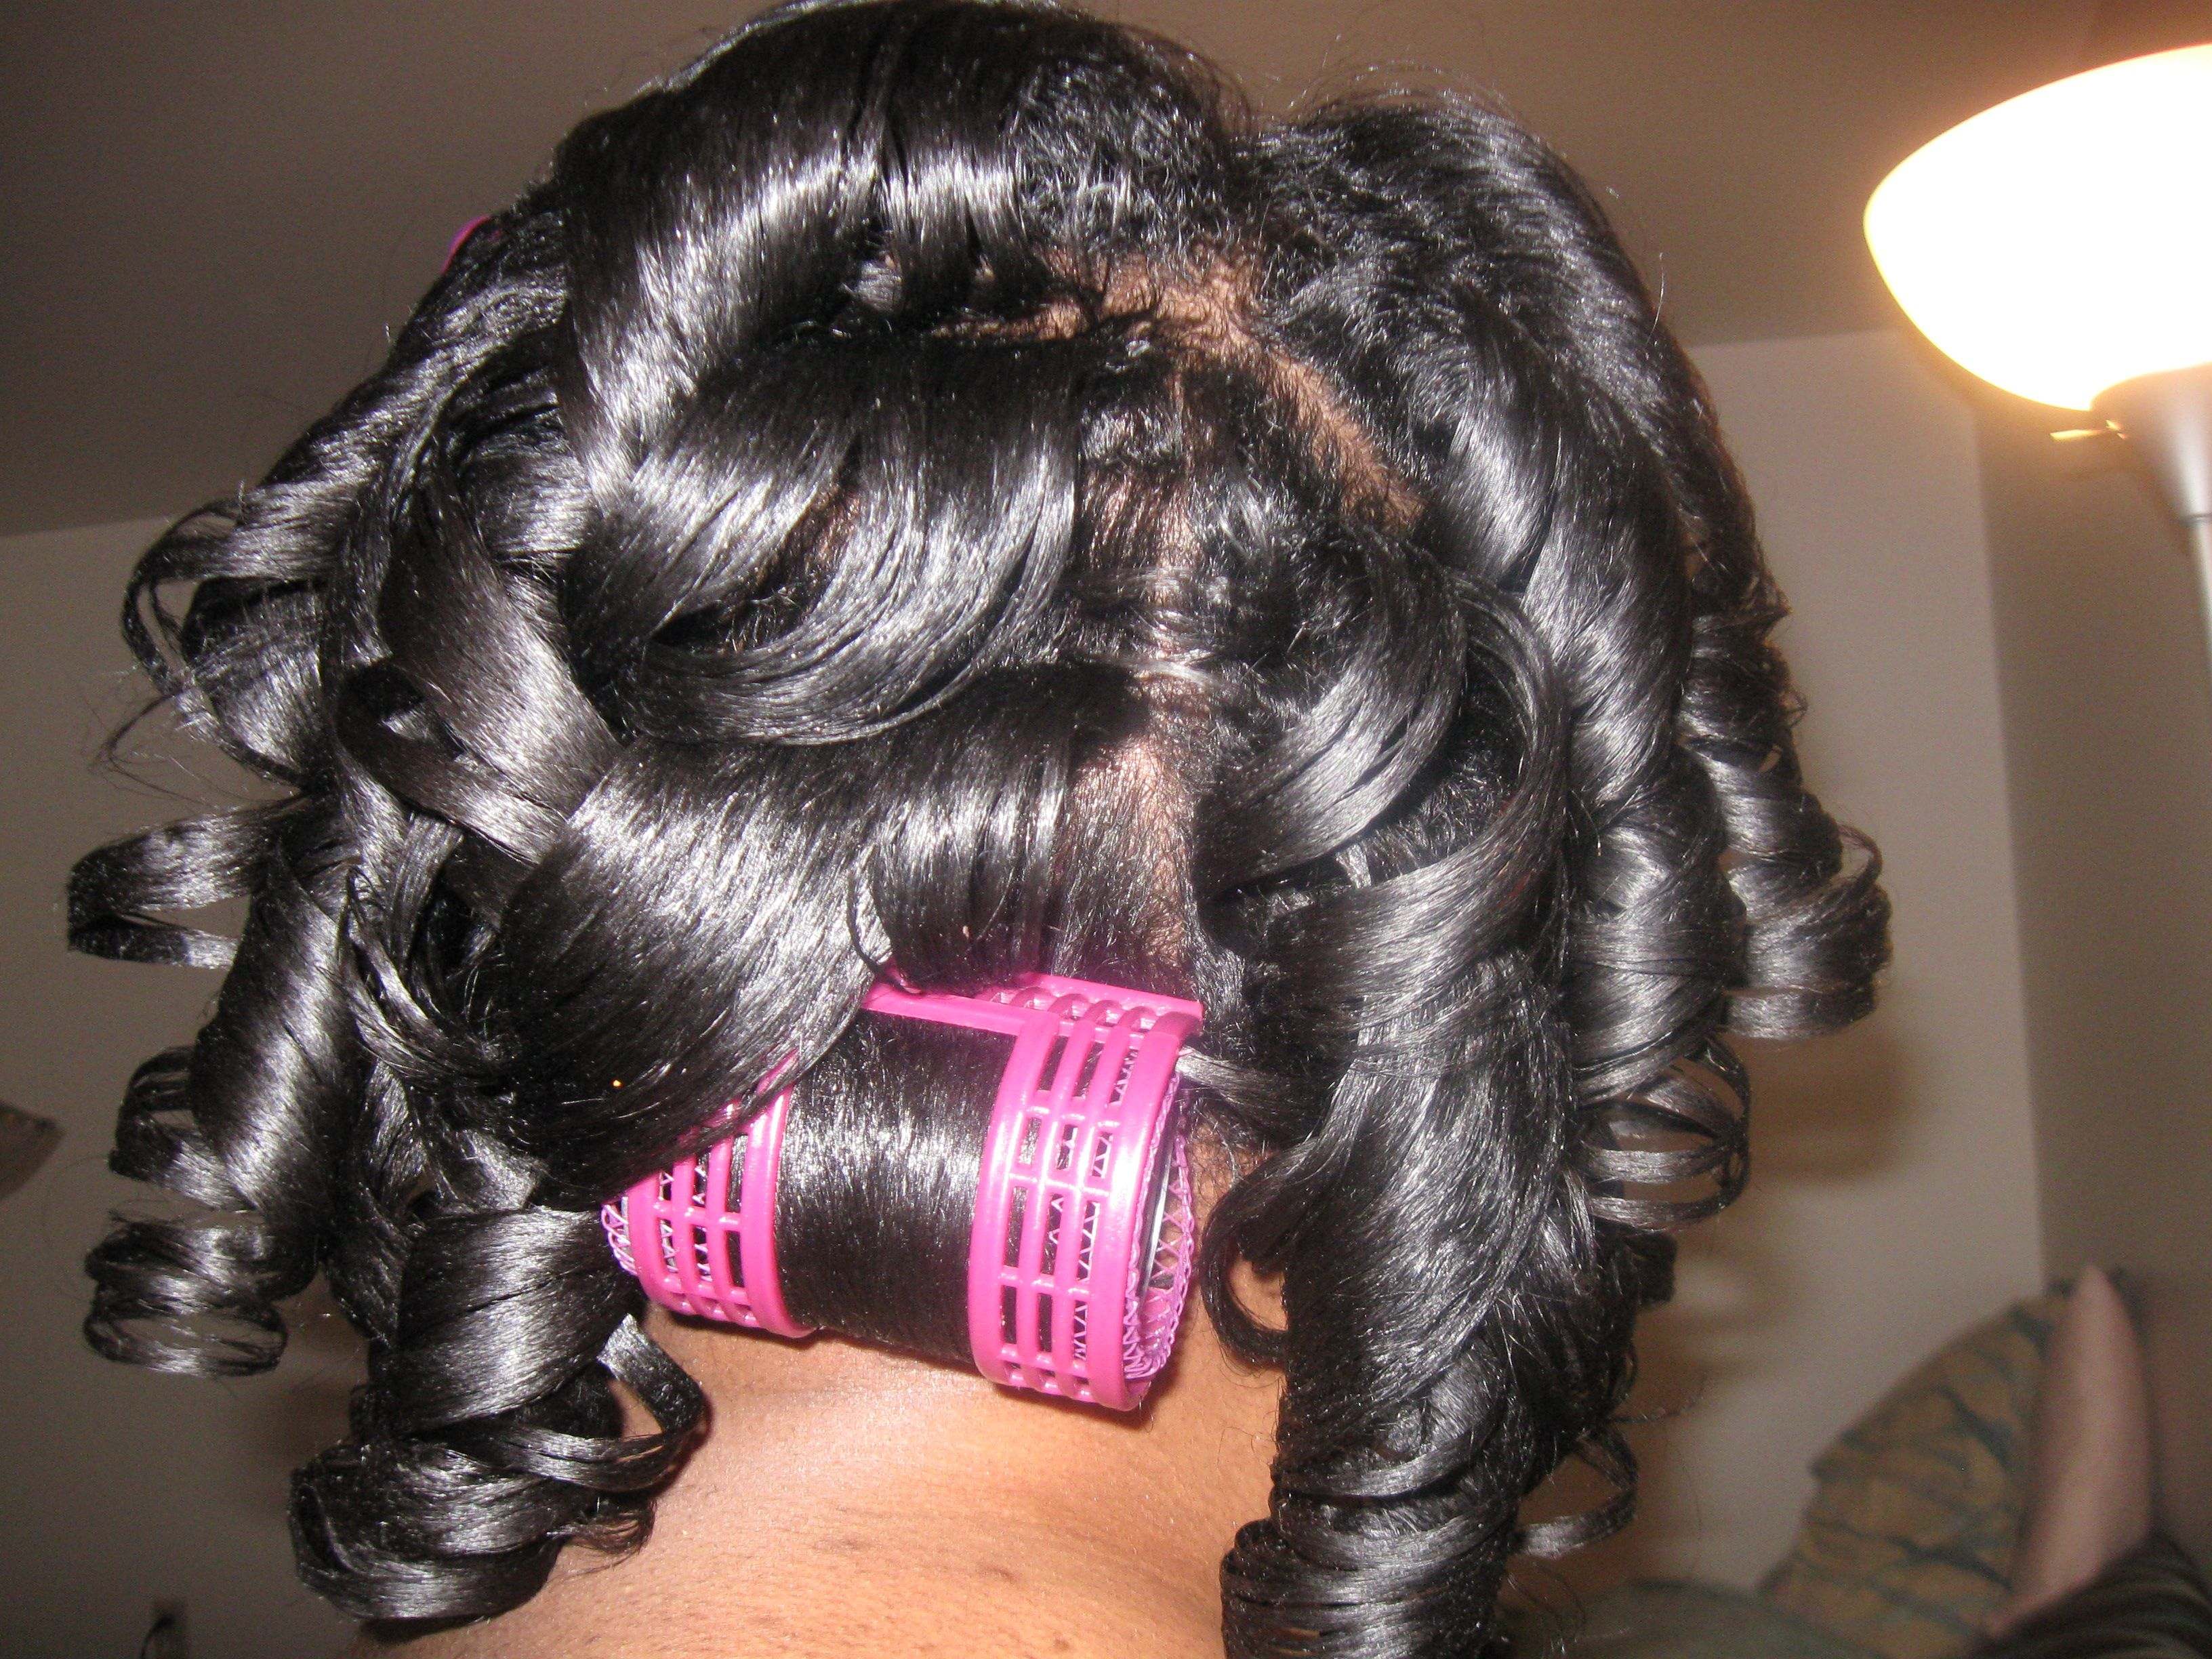 Black Hair Roller Set Styles: Natural Rollerset Using Mesh Rollers And New Lottabody